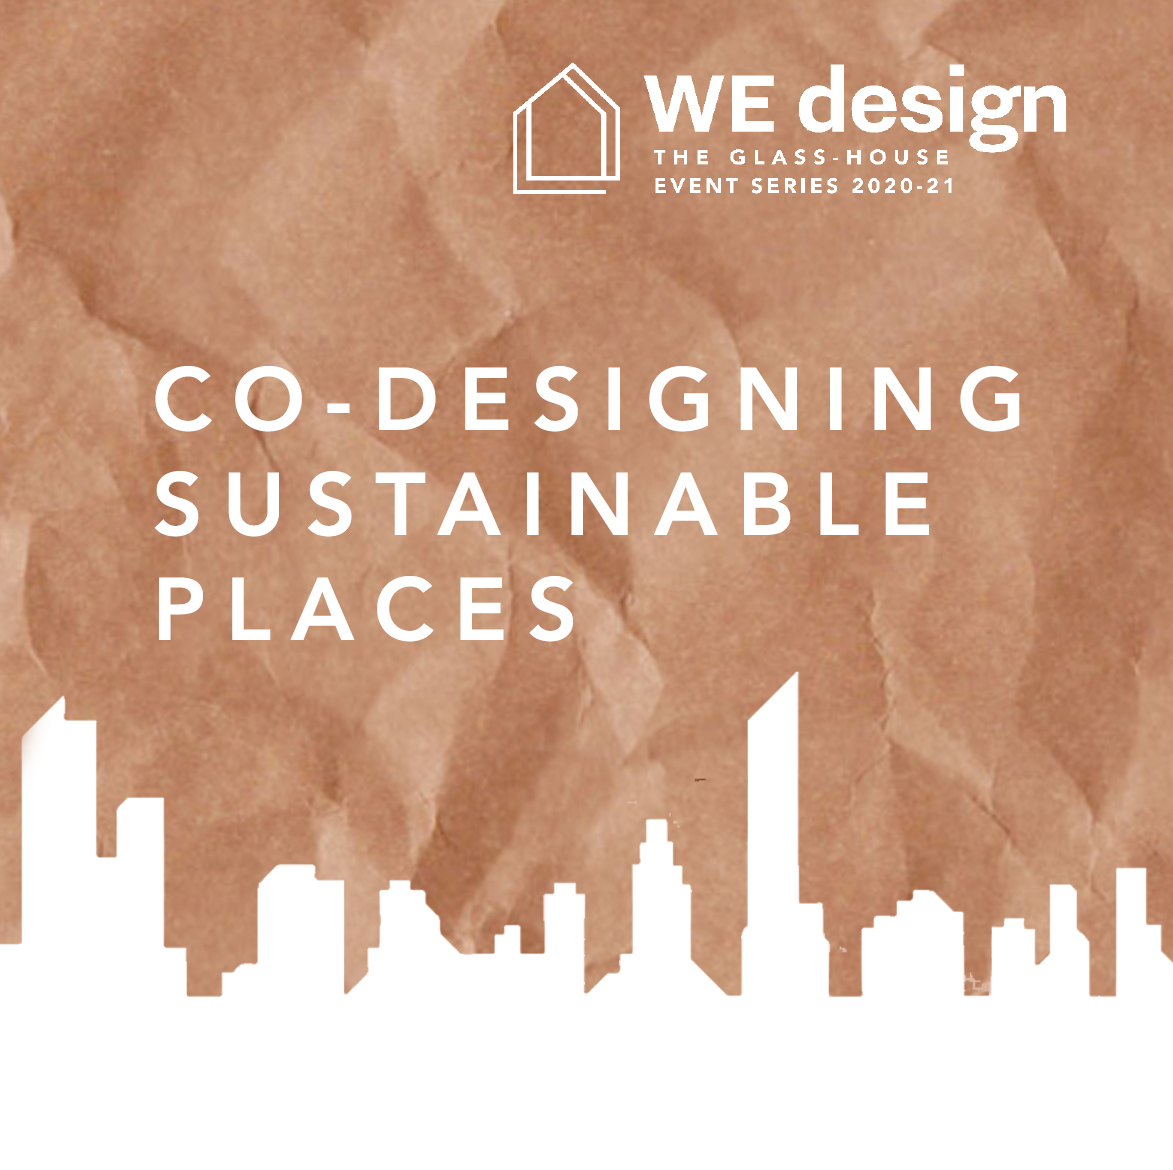 Co-designing Sustainable Places: Voices of The Glass-House 2020/21 Event Series